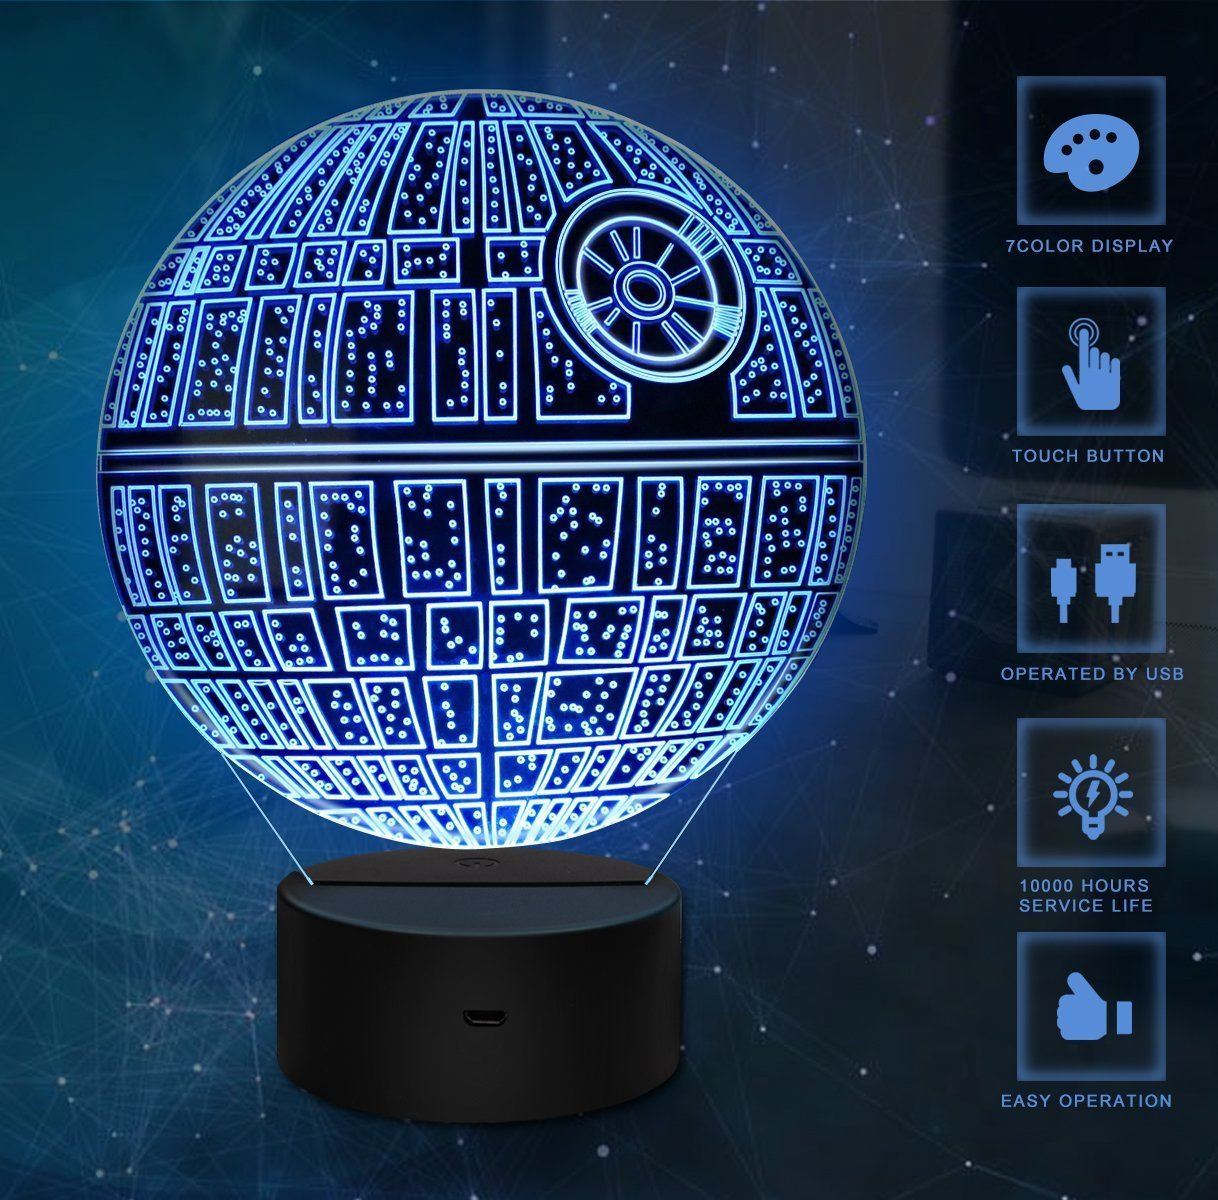 3D Illusion Light, 7Models Touch Control Optical Illusion LED Night Light with Charging Cable for Home Dé cor, Kids, Star Wars Fans (Death Star) 7Models Touch Control Optical Illusion LED Night Light with Charging Cable for Home Décor Jane Choi